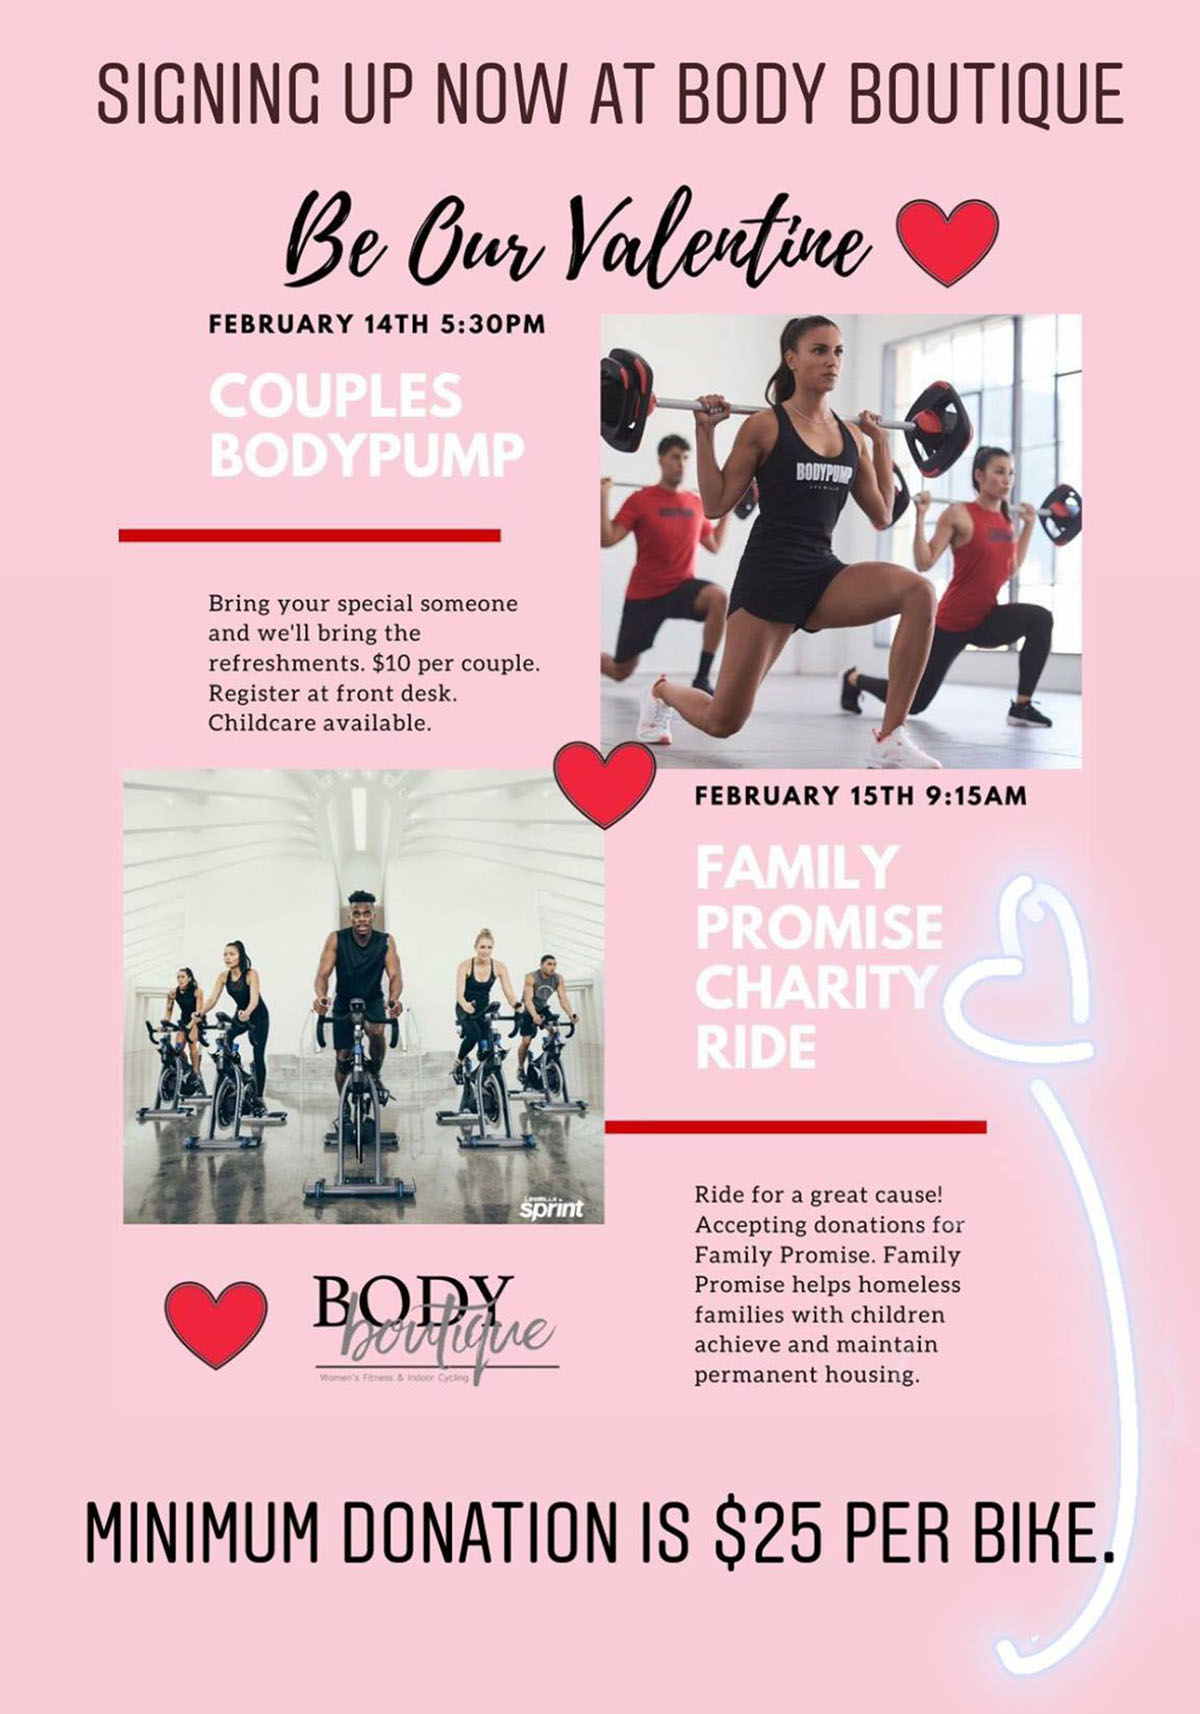 Couple BodyPump & Family Promise Charity Ride